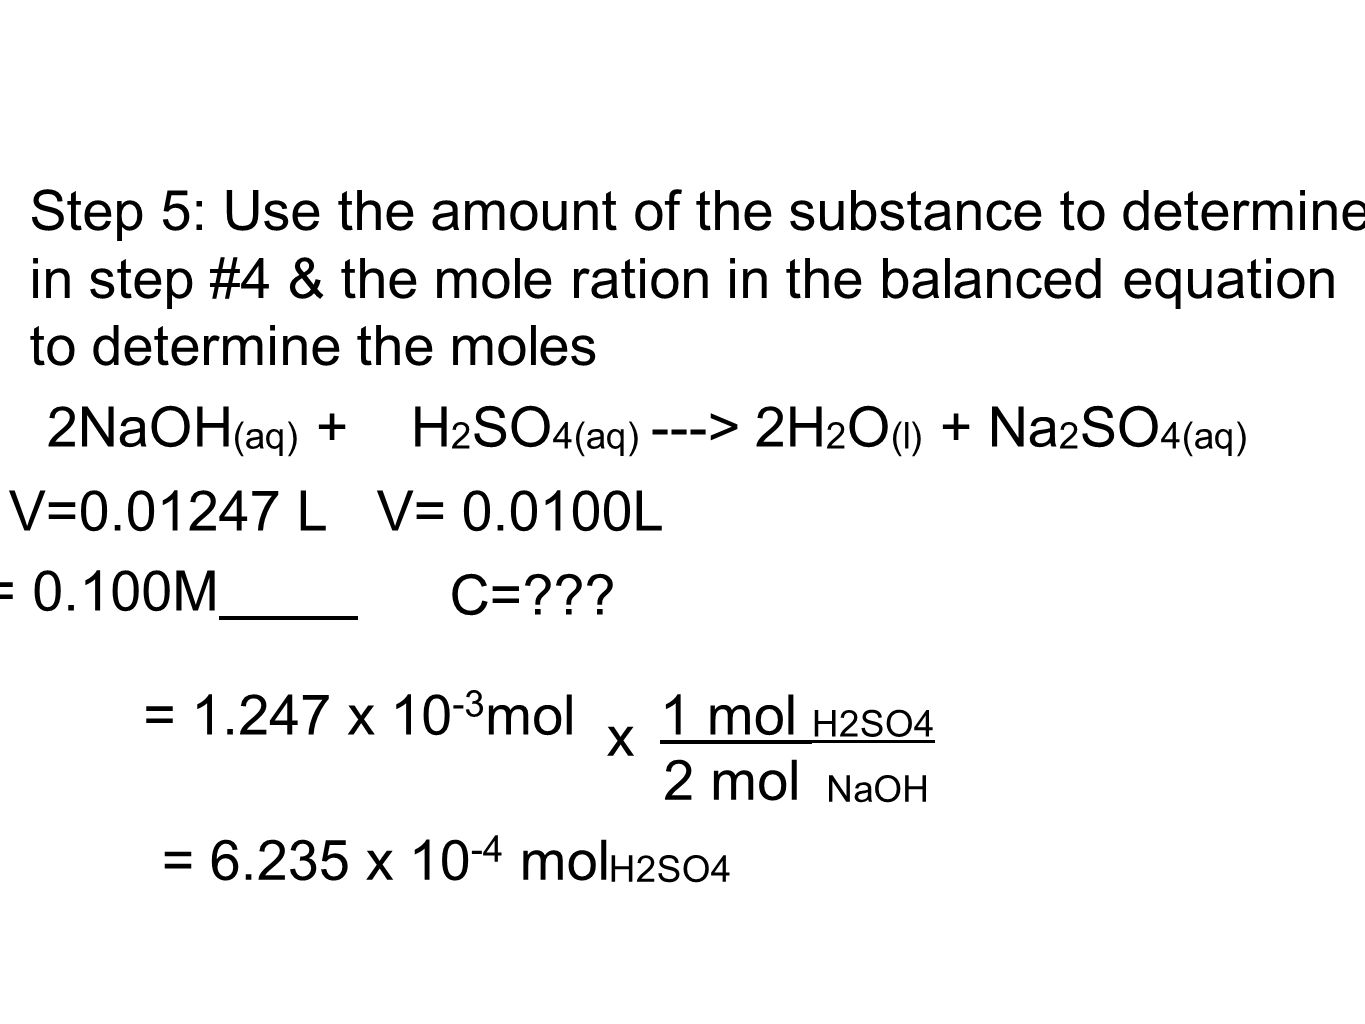 Step 5: Use the amount of the substance to determine in step #4 & the mole ration in the balanced equation to determine the moles